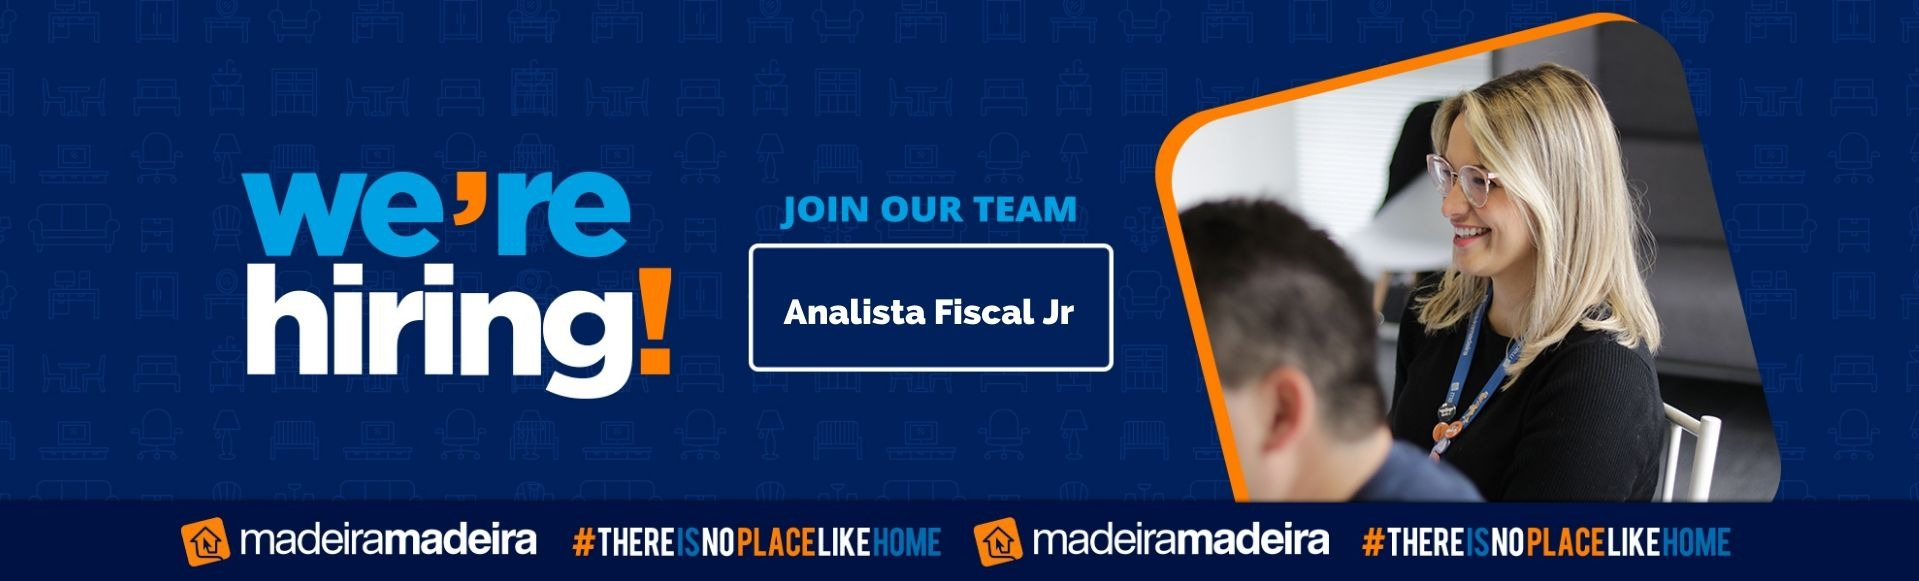 Analista Fiscal Jr